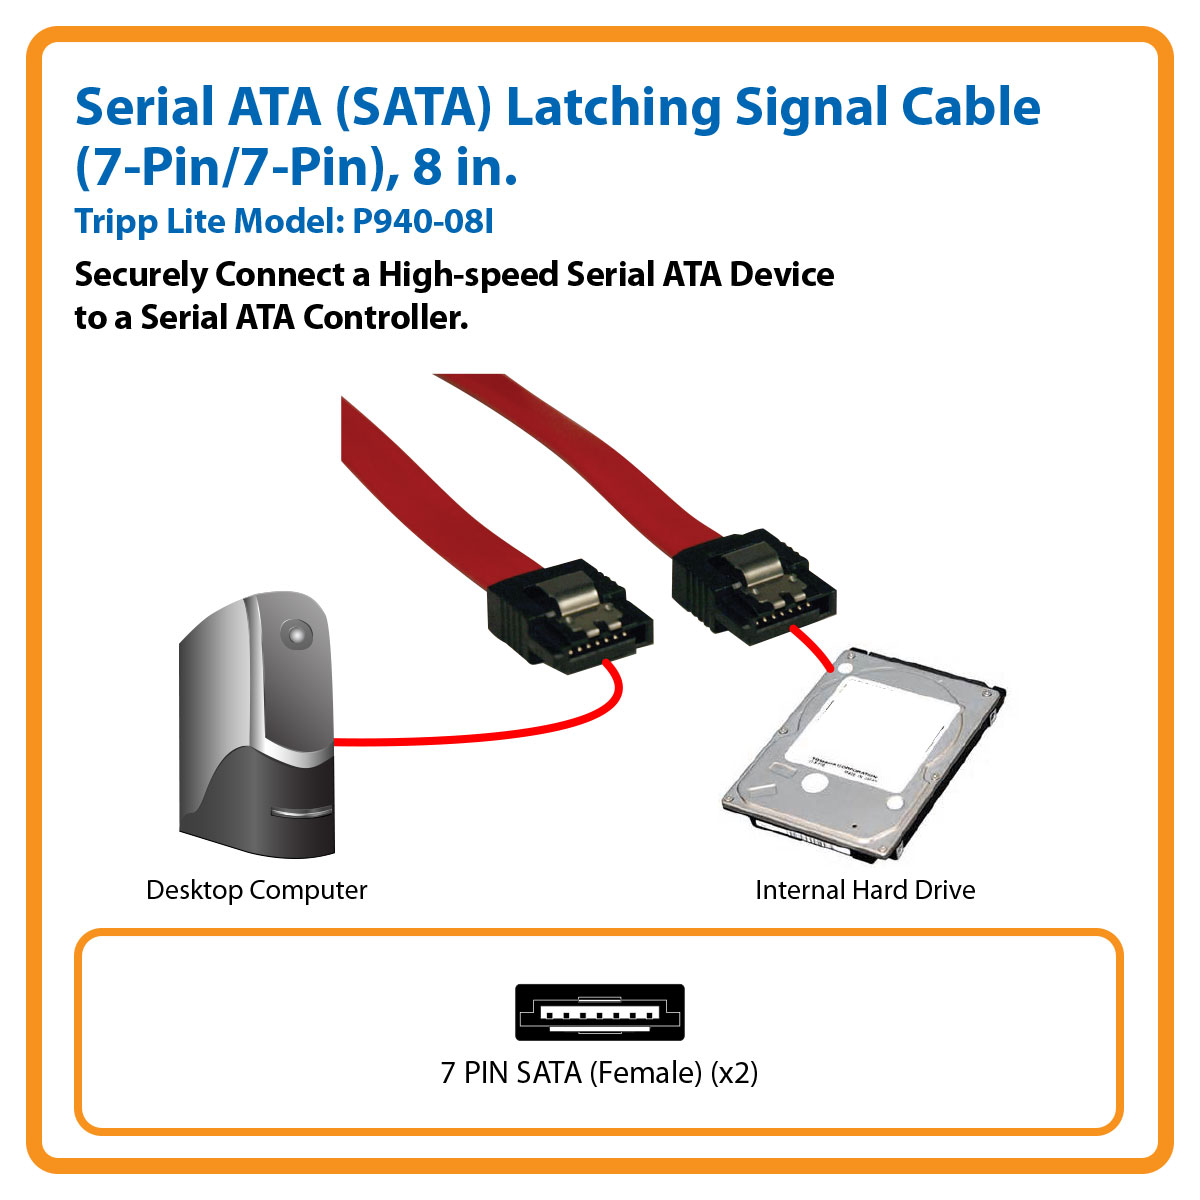 Tripp Lite 8 Inch Serial Ata Sata Signal Cable 7pin Male And Power Molex Adapter One Combo To Connect P940 08i Parallel Cables